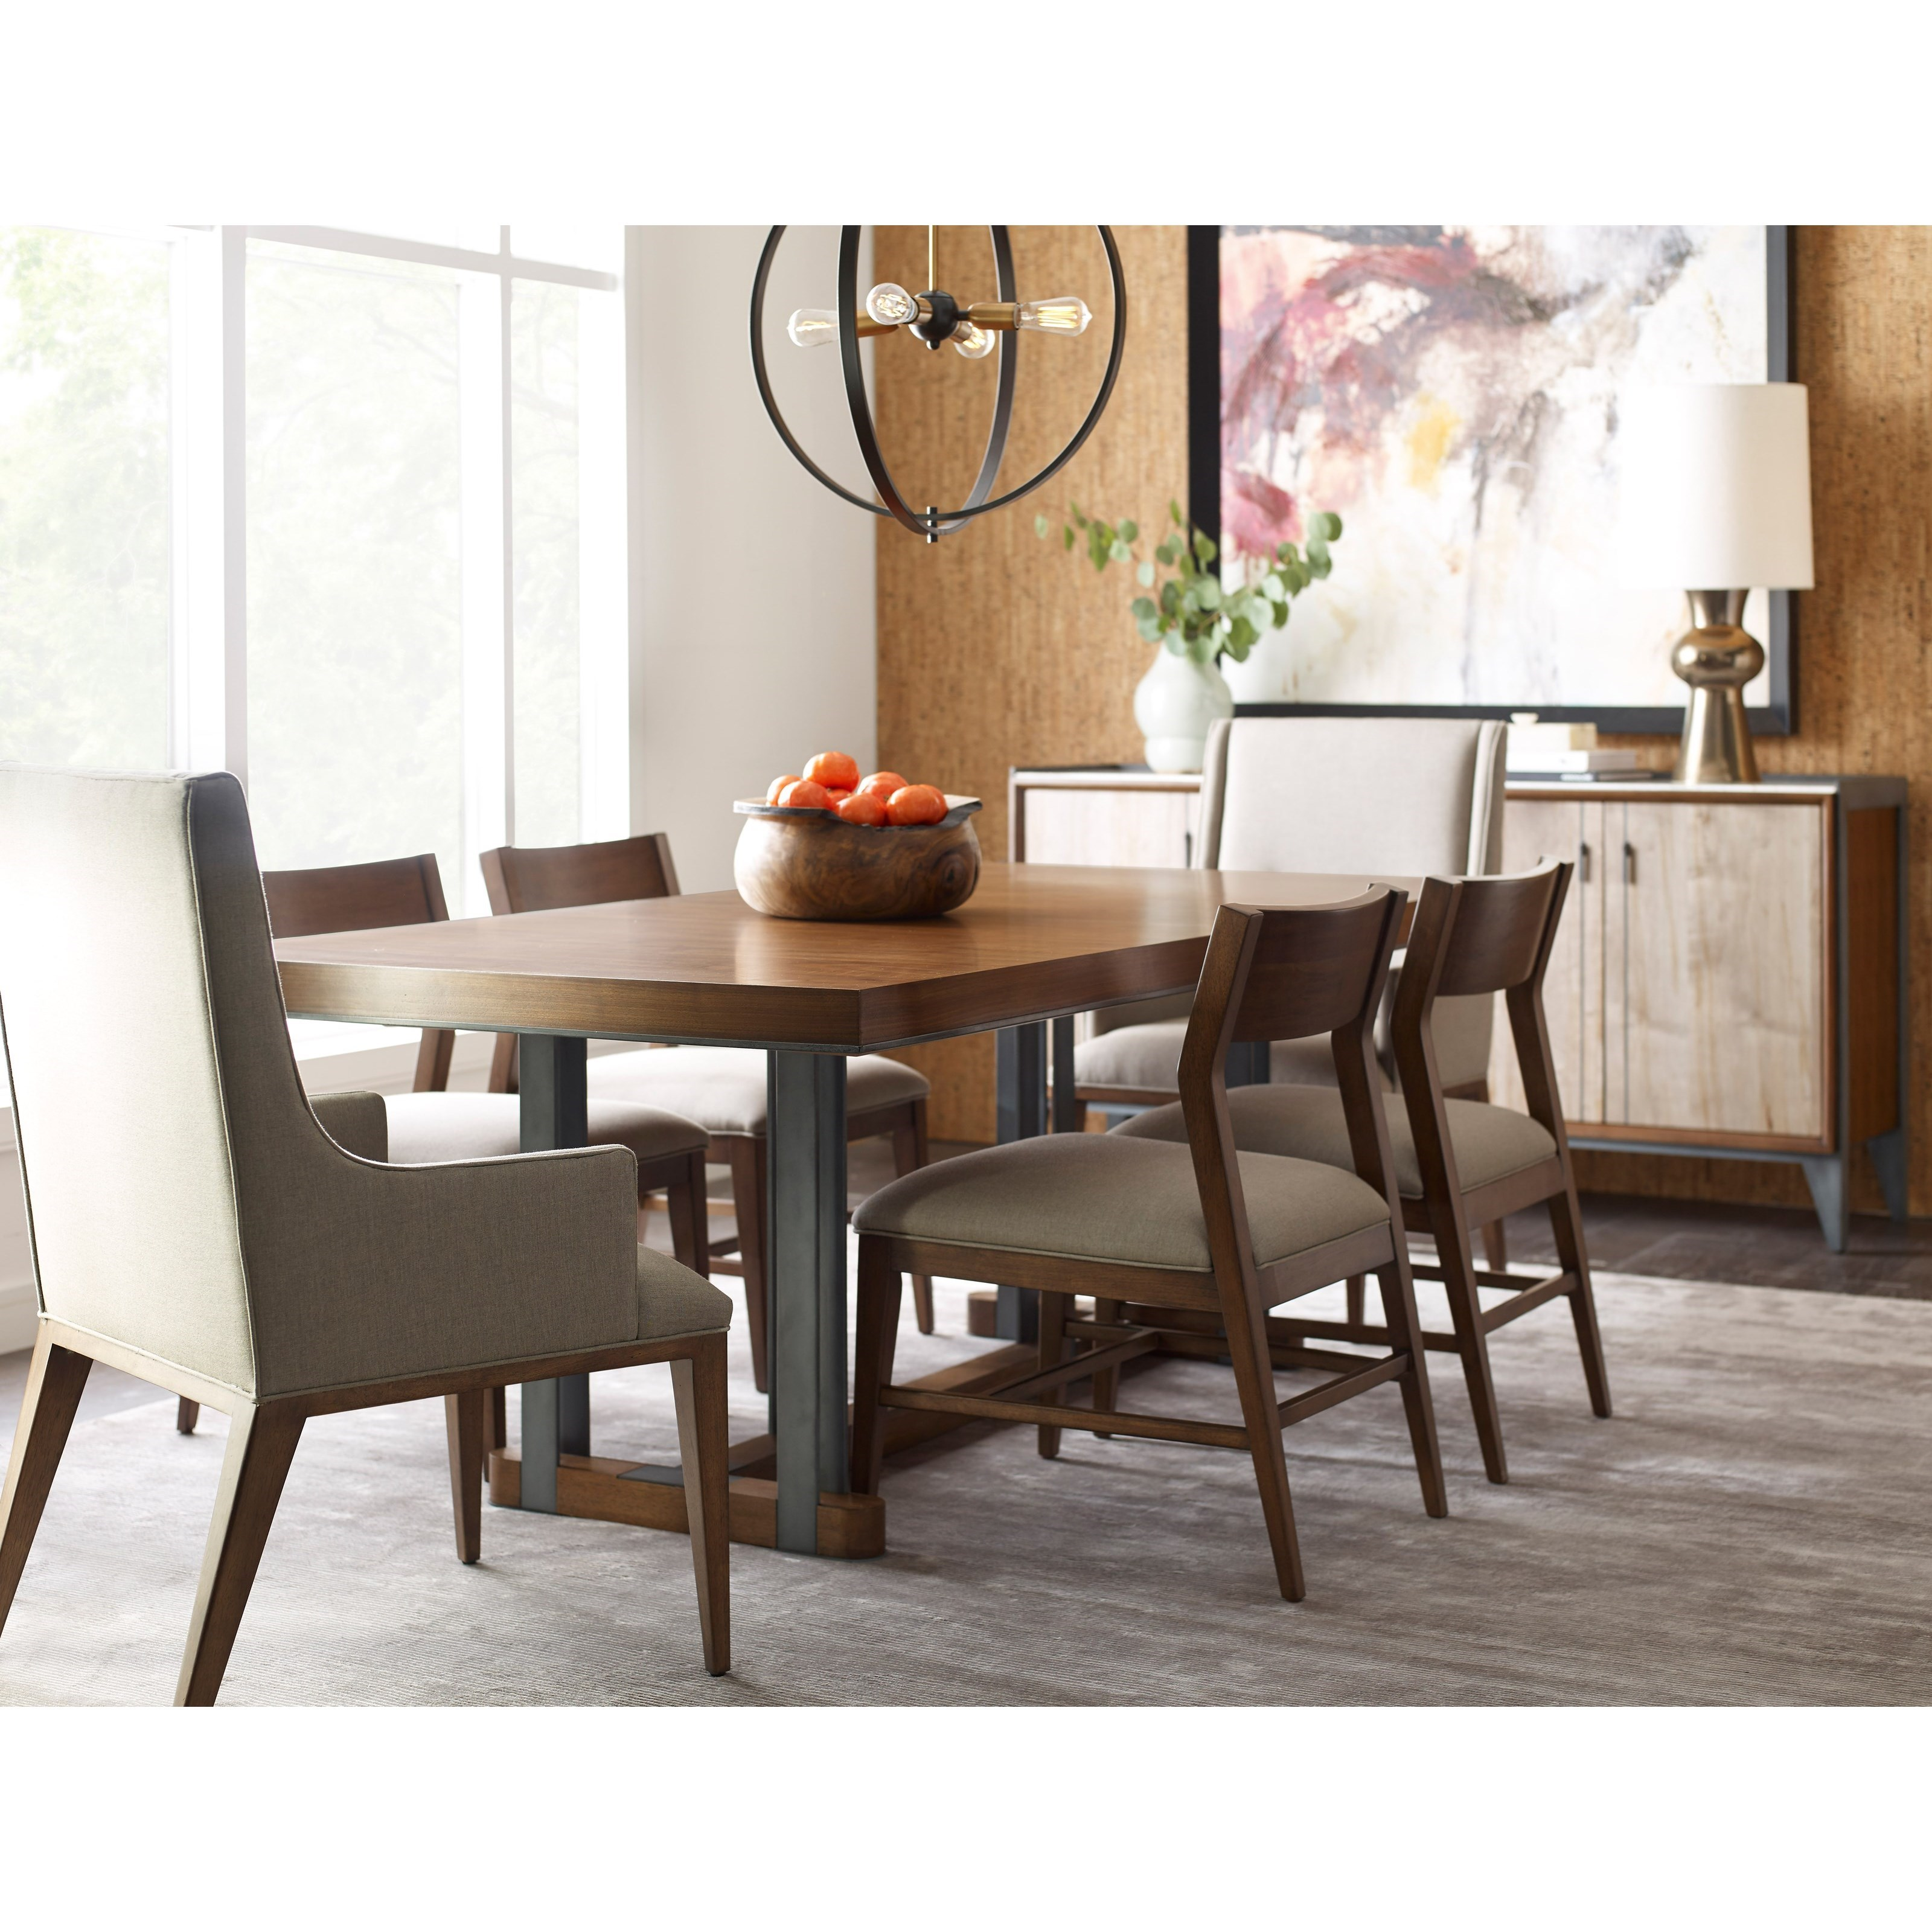 Rectangular Dining Room Tables With Leaves: American Drew Modern Synergy Curator Rectangular Dining